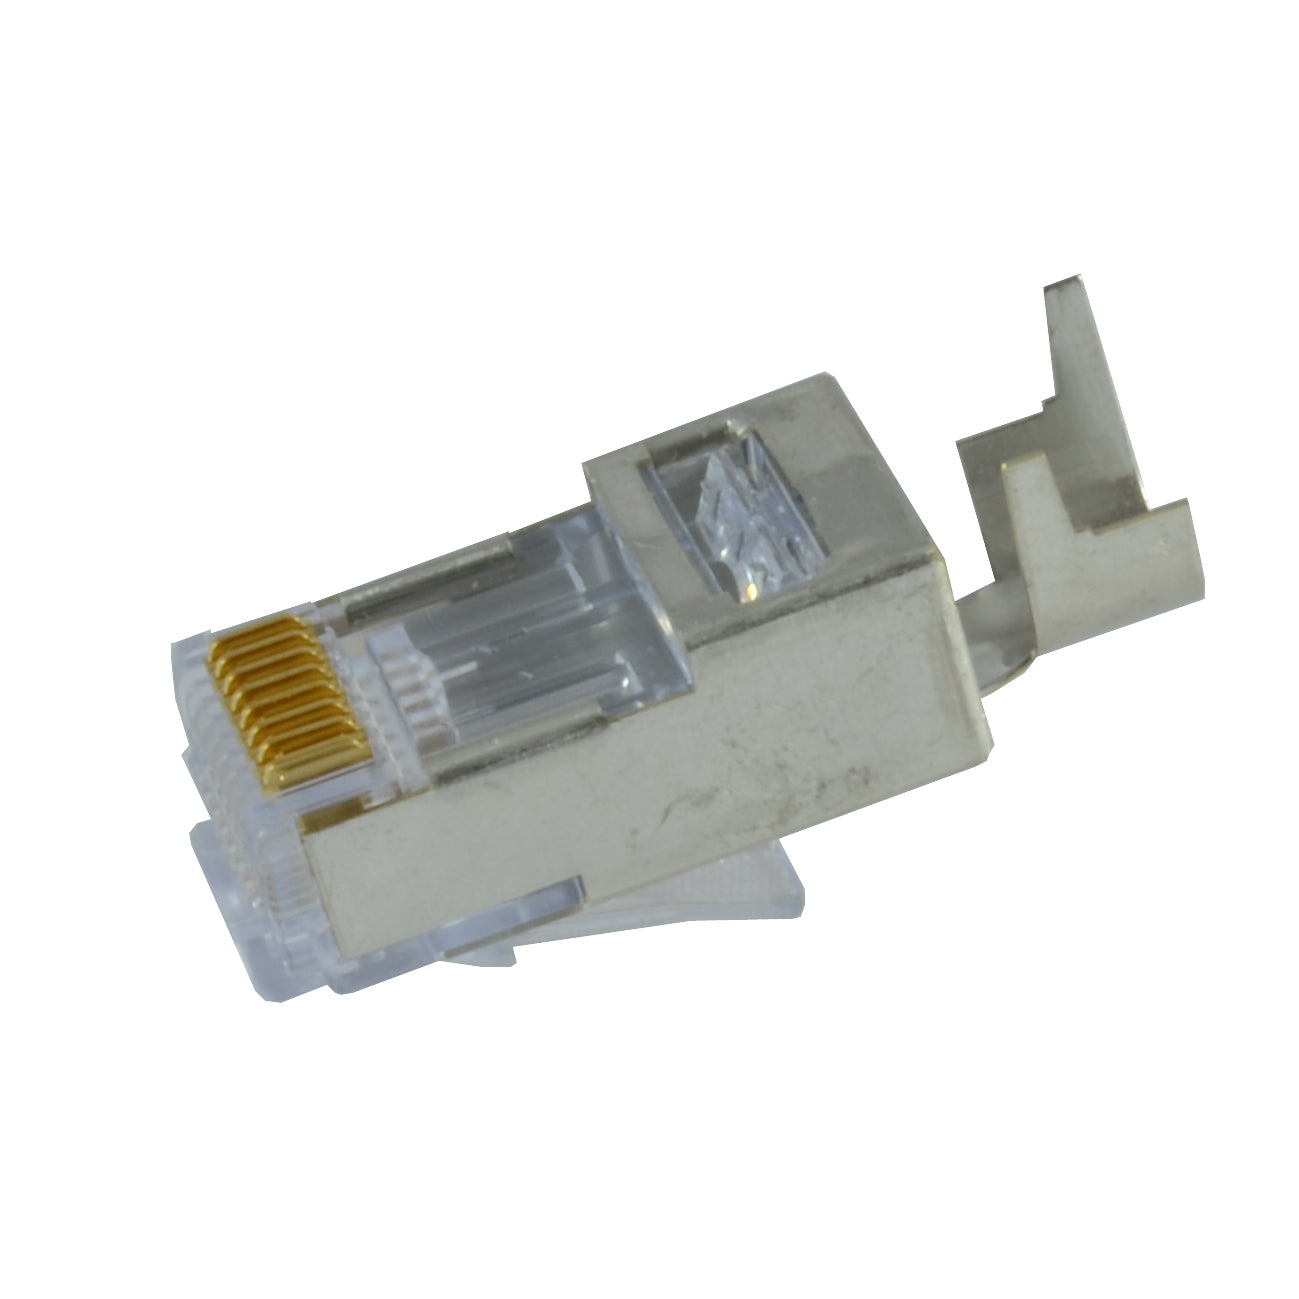 EZ RJ45 CAT6 external ground pack of 10 202022-10